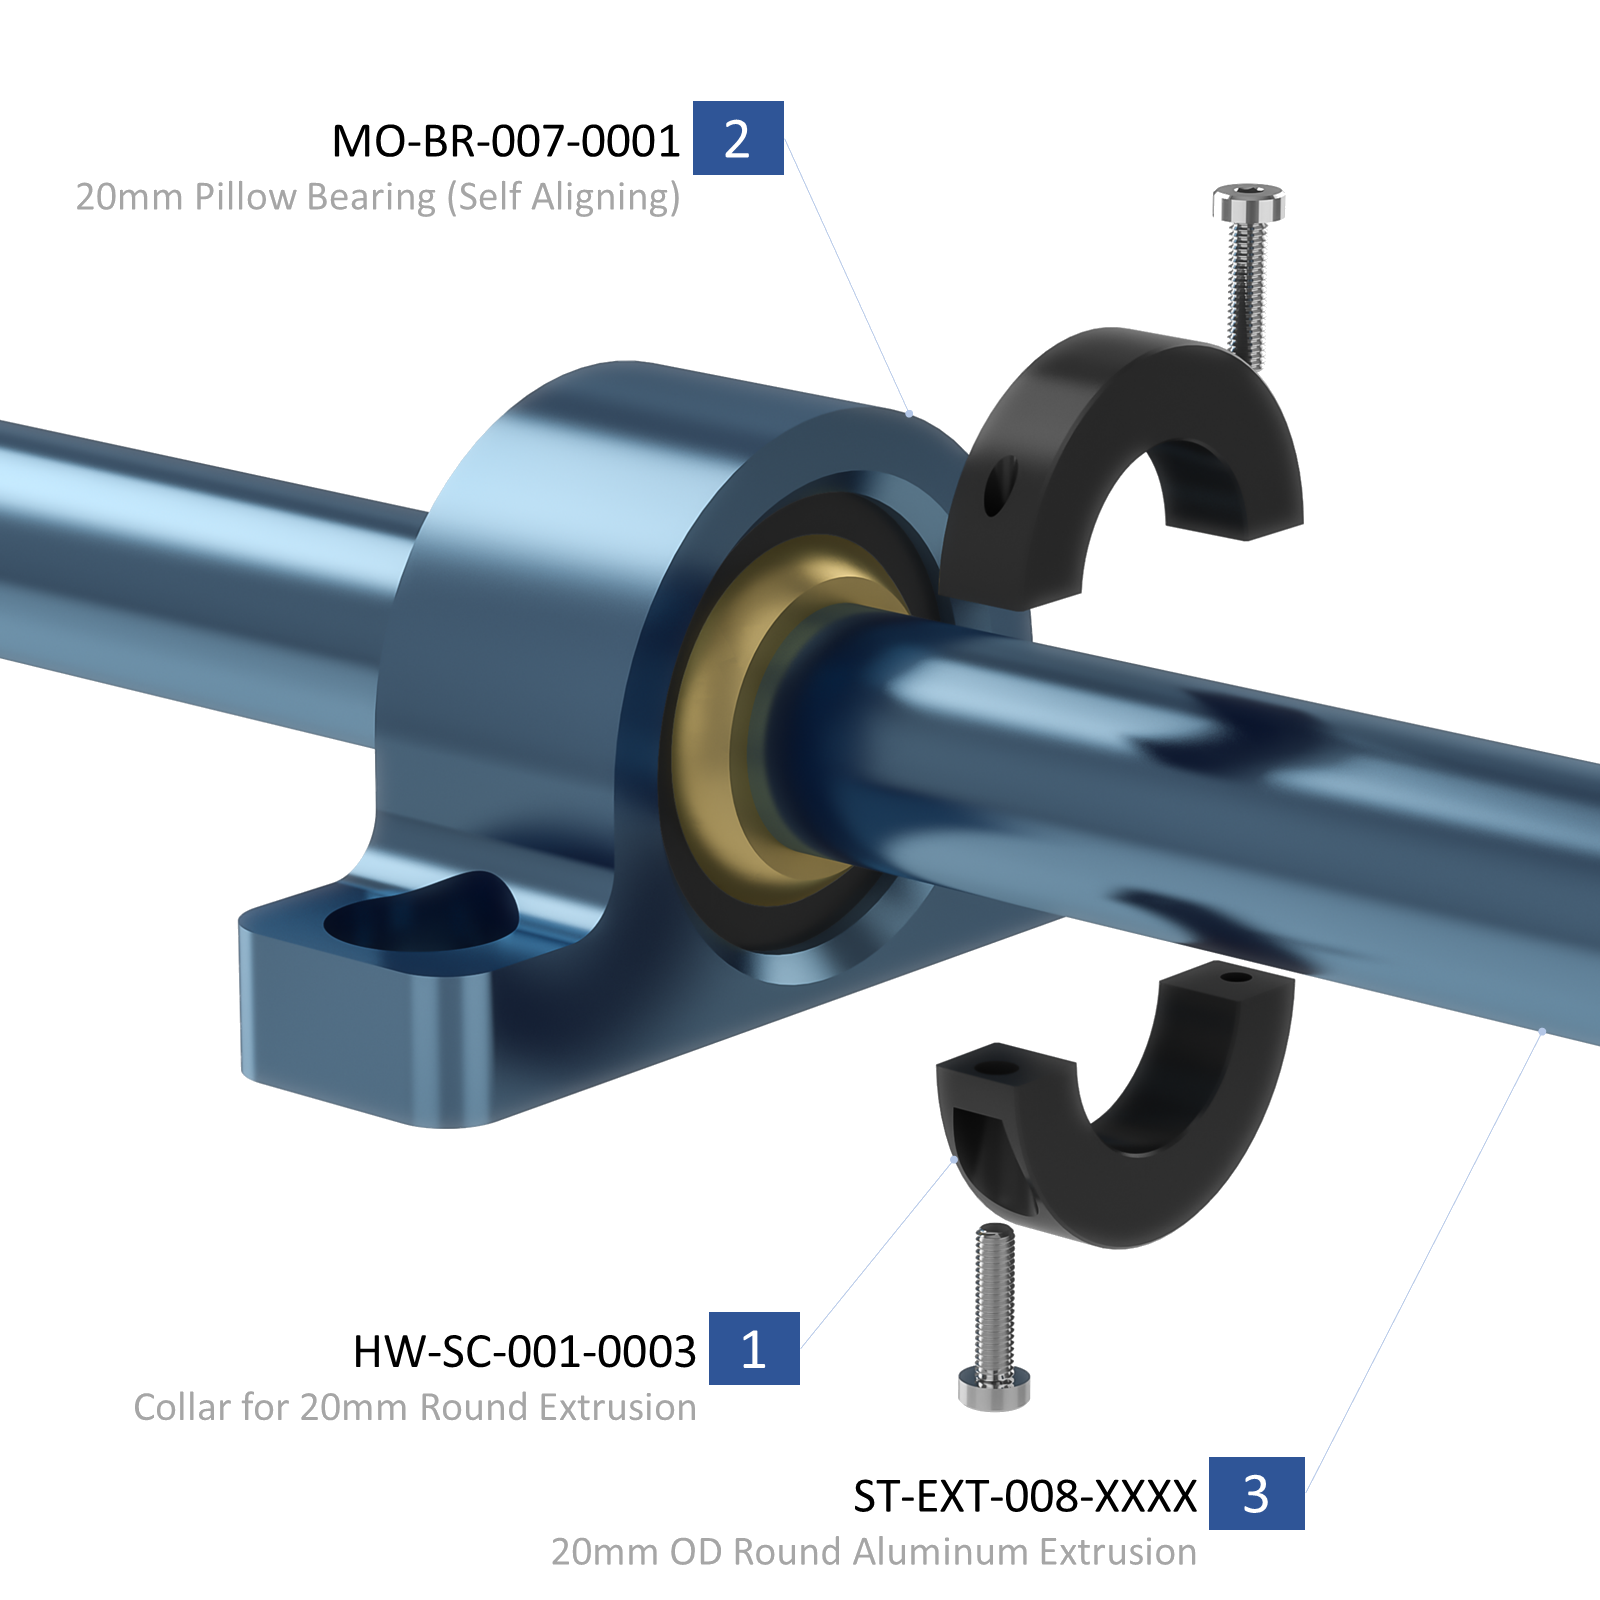 Shaft, bearing and collar assembly.